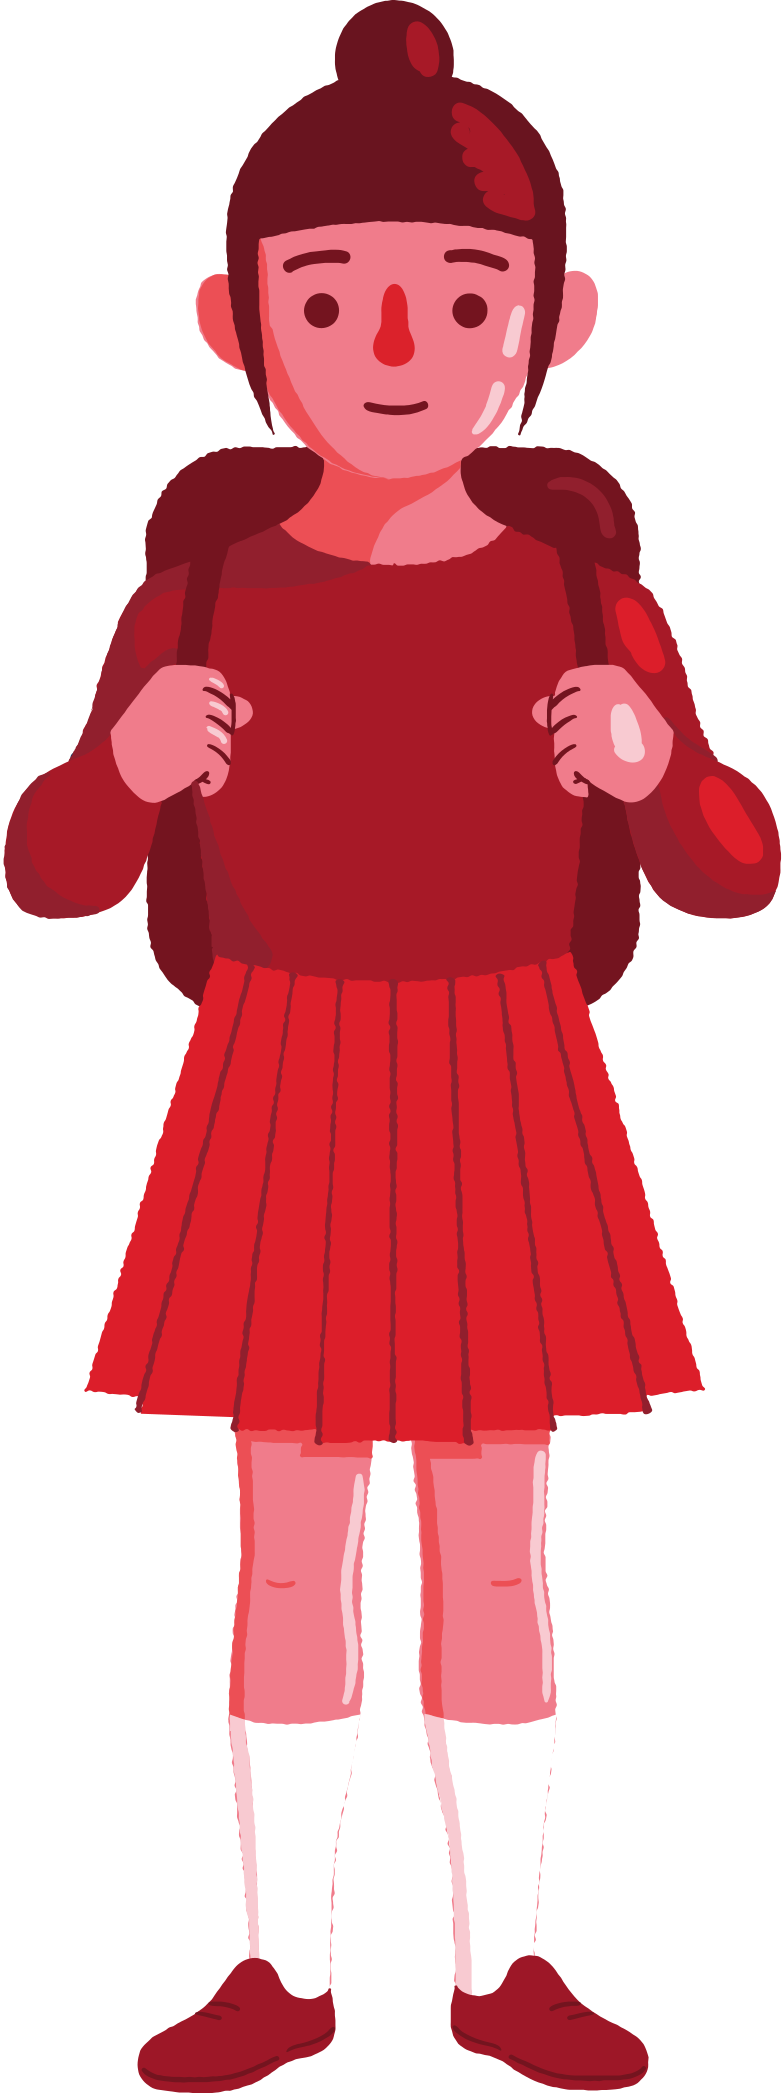 style school girl Vector images in PNG and SVG | Icons8 Illustrations